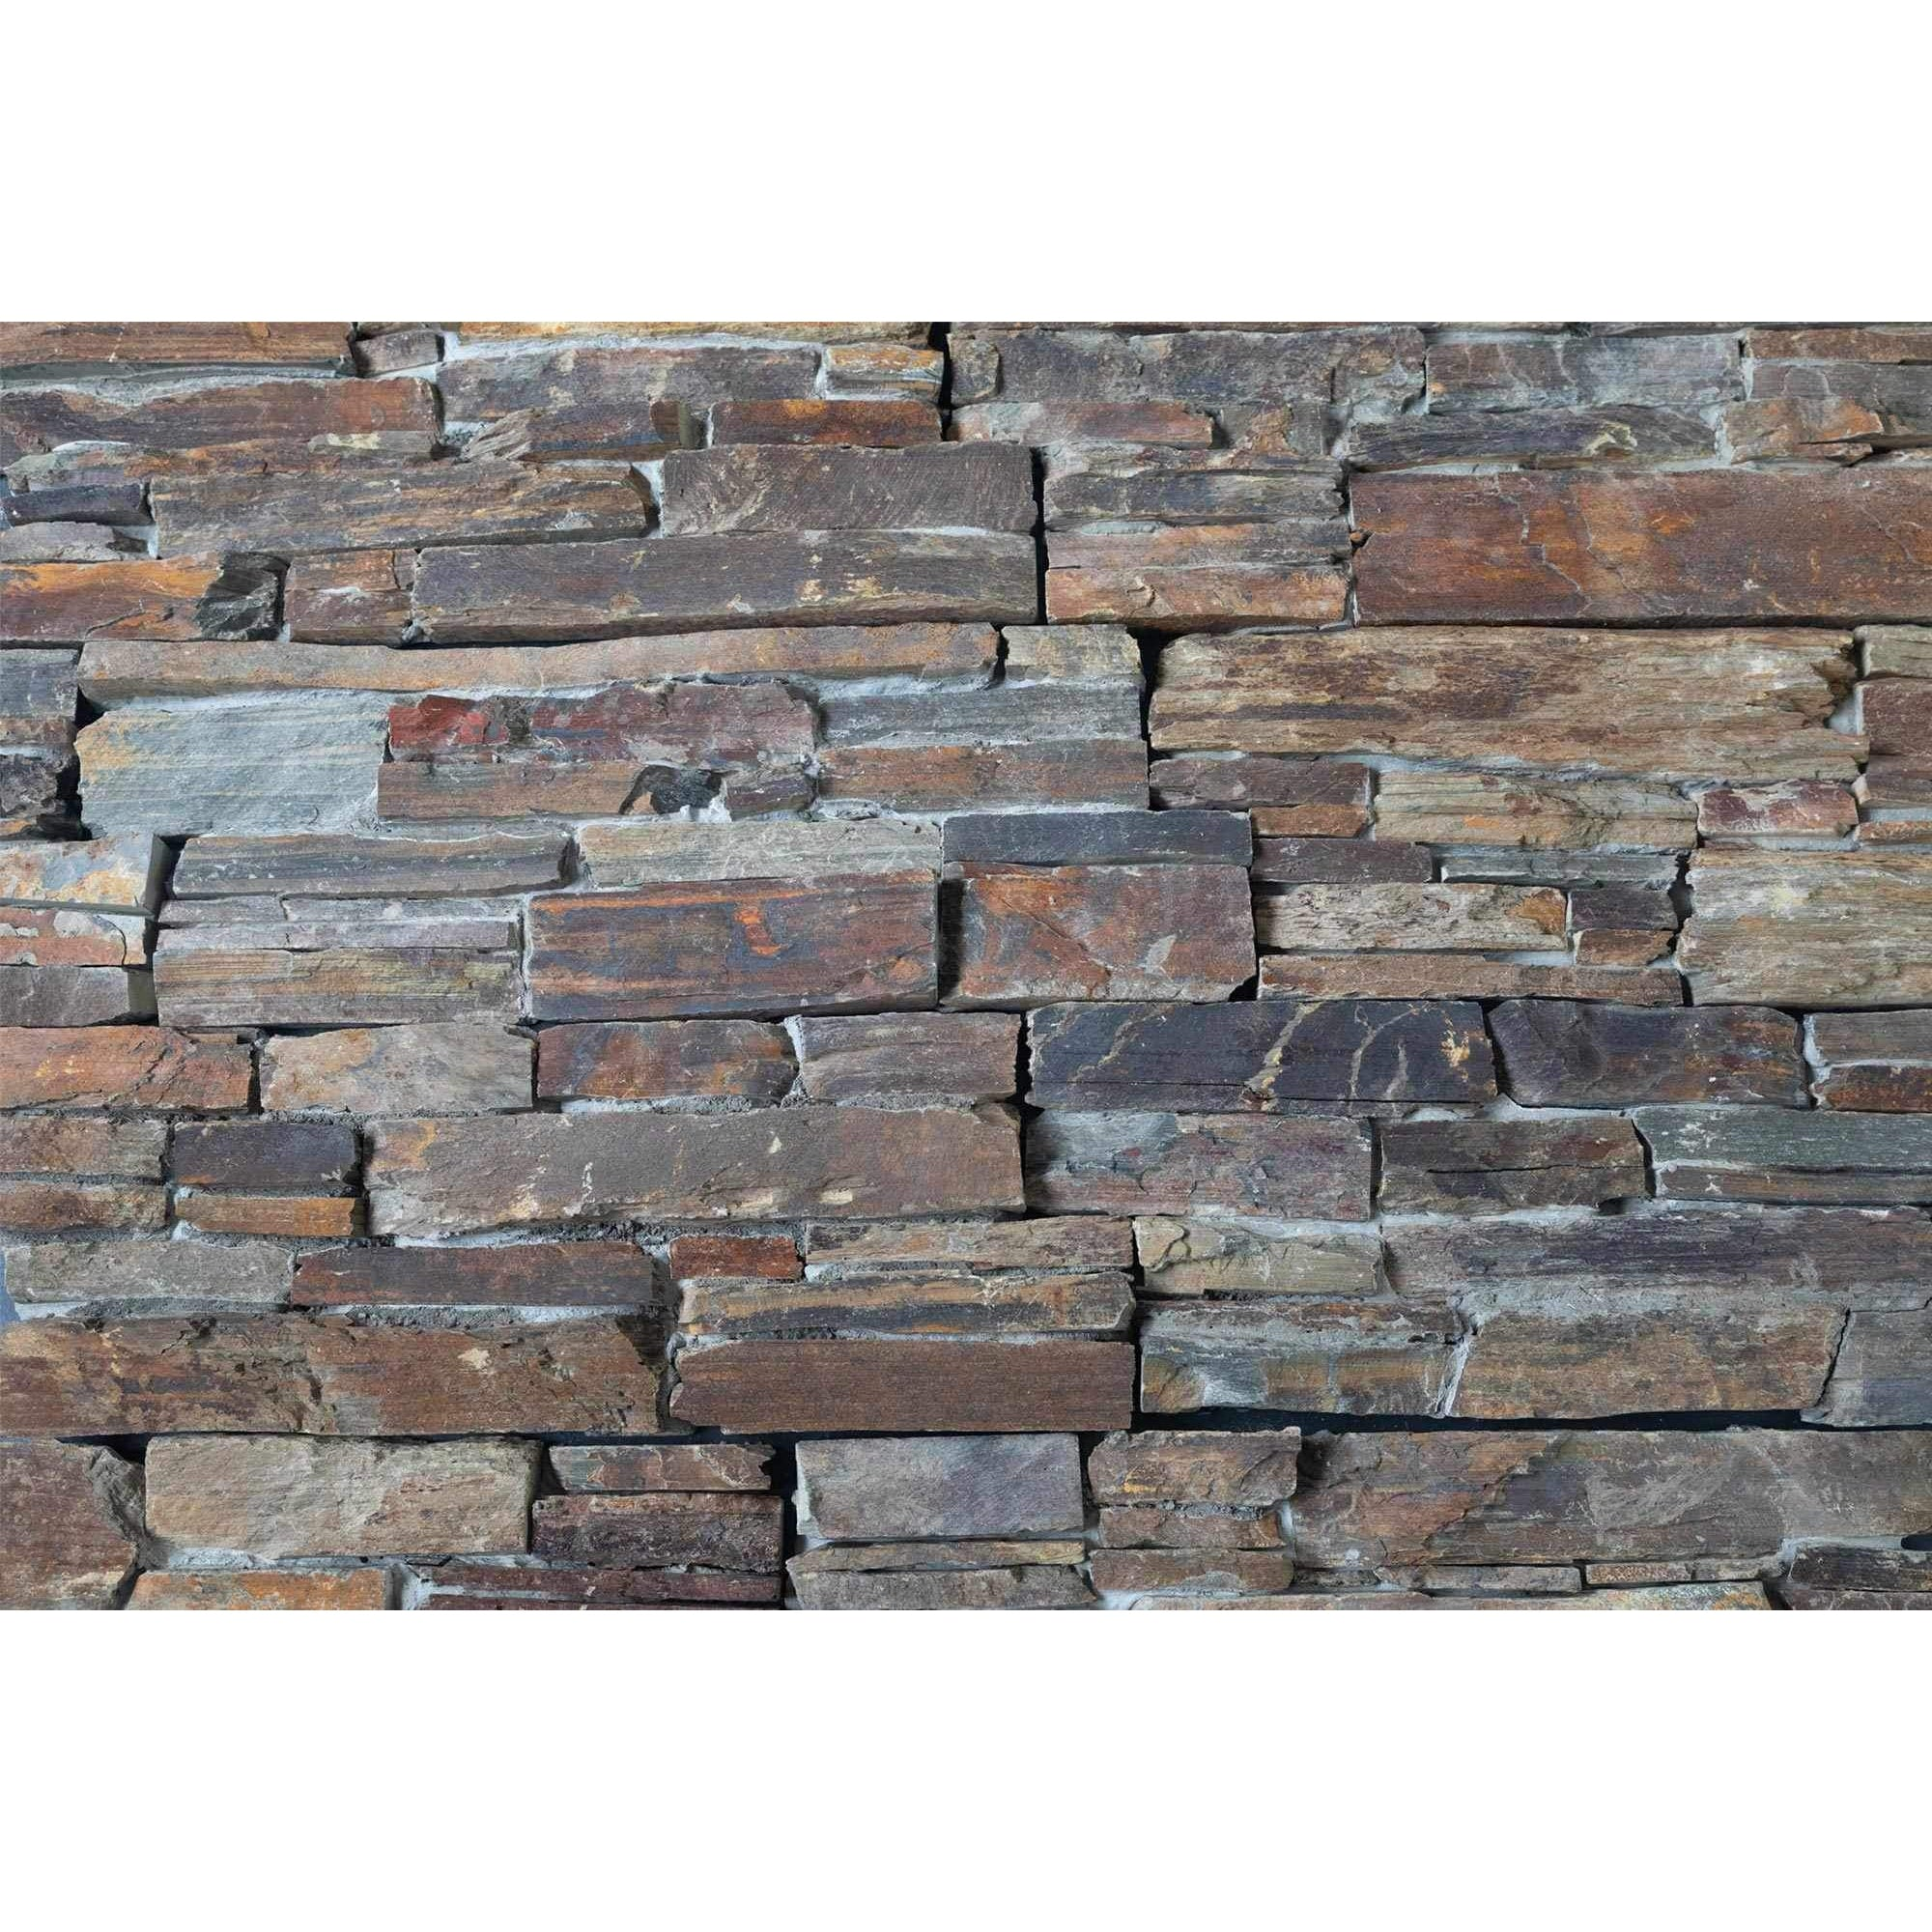 Natural Ledgestone Feature Wall Cladding Panels - Slate